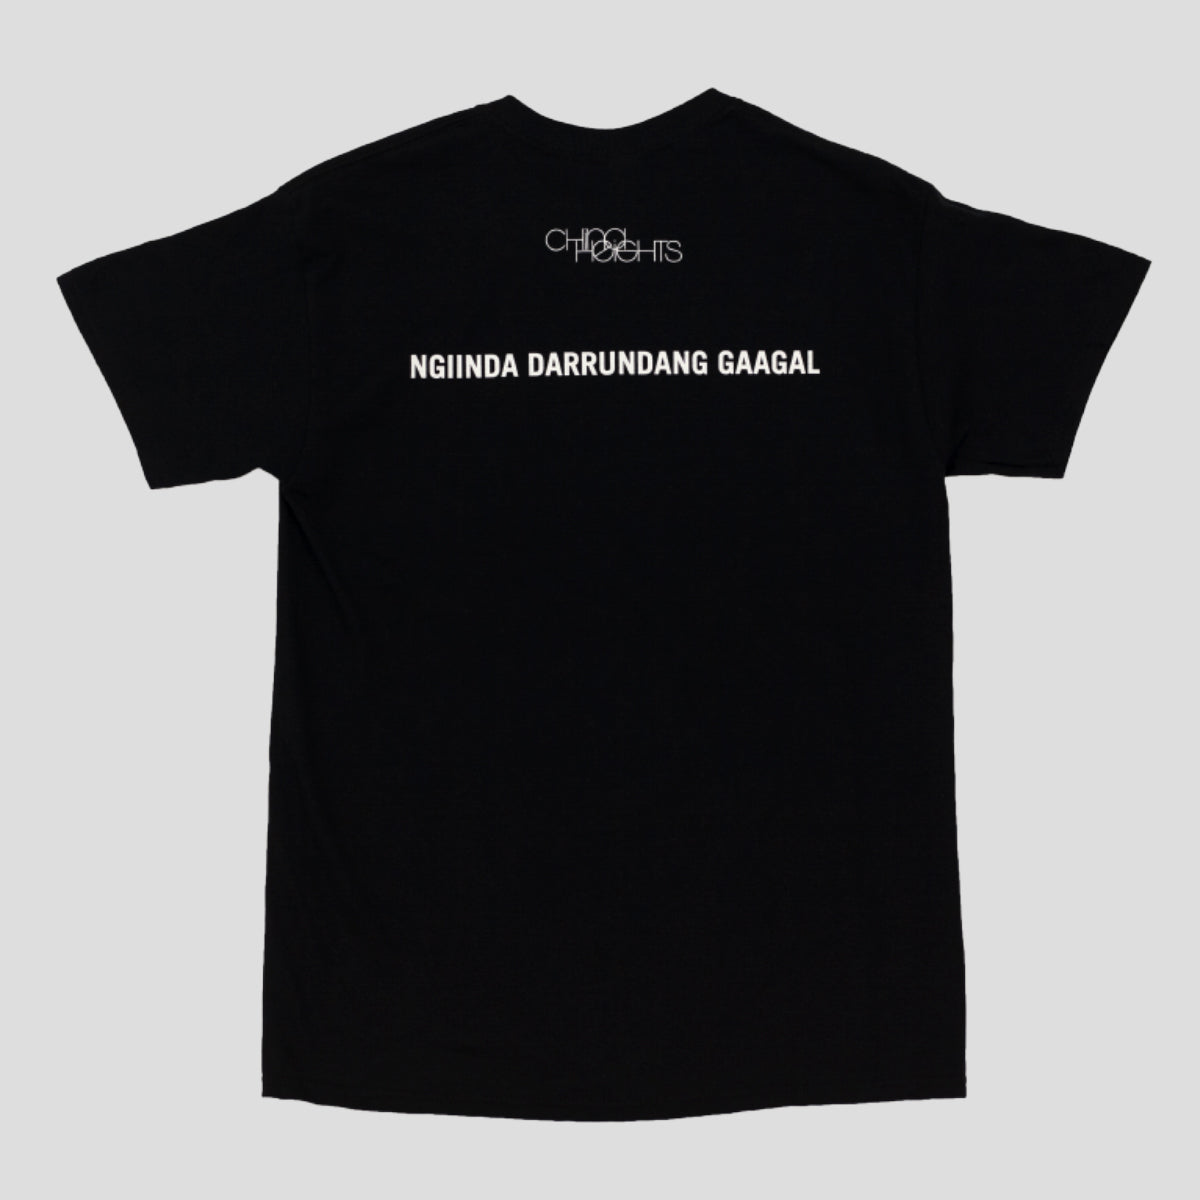 "CHINA HEIGHTS ""NGIINDA DARRUNDANG GAGAAL"" TEE BLACK"